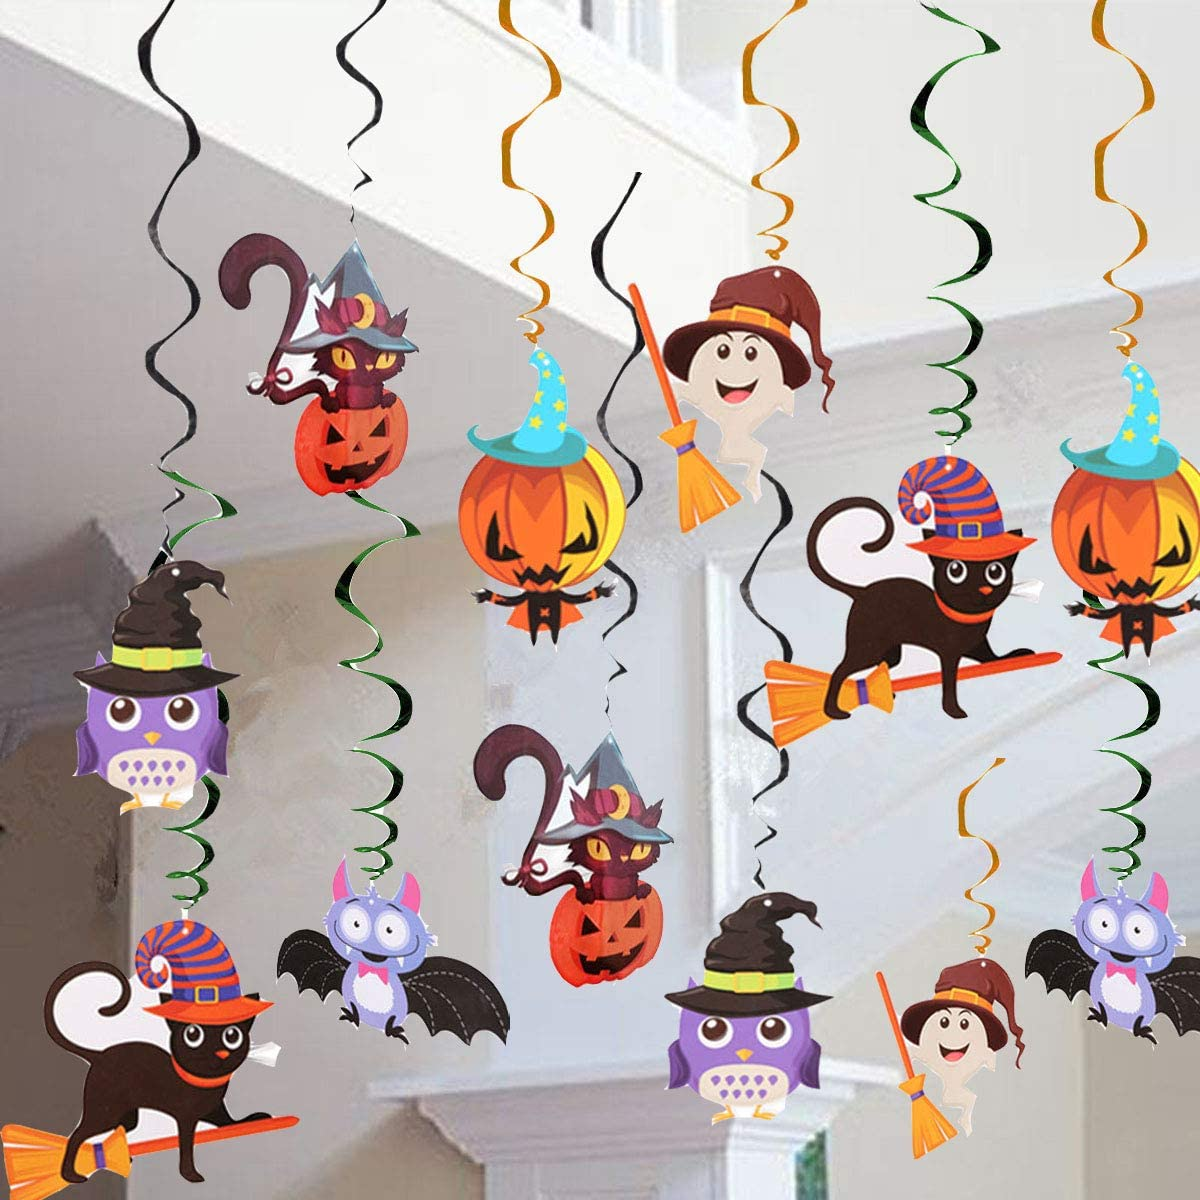 Halloween Hanging Swirl Decoration, Colorful Hanging Swirl Ceiling Decoration, Witch, Bats and Skull themed Hanging Swirl Decoration, Spider and Skull Display, Scary Pumpkin Standees